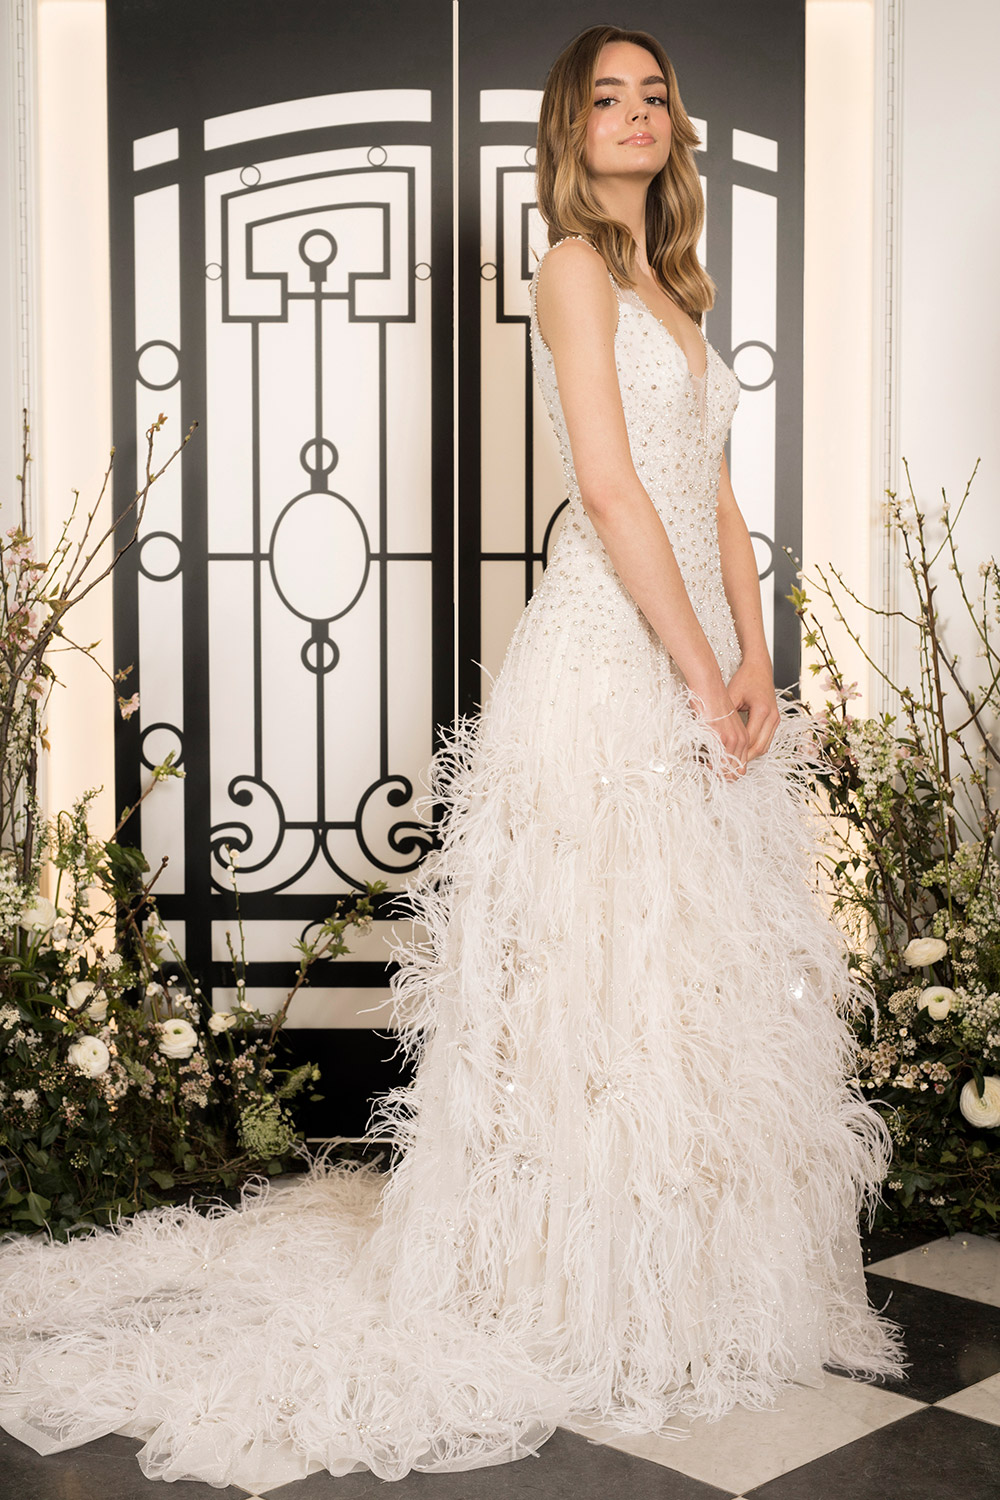 Etoile - Jenny Packham 2020 Bridal Collection. www.theweddingnotebook.com